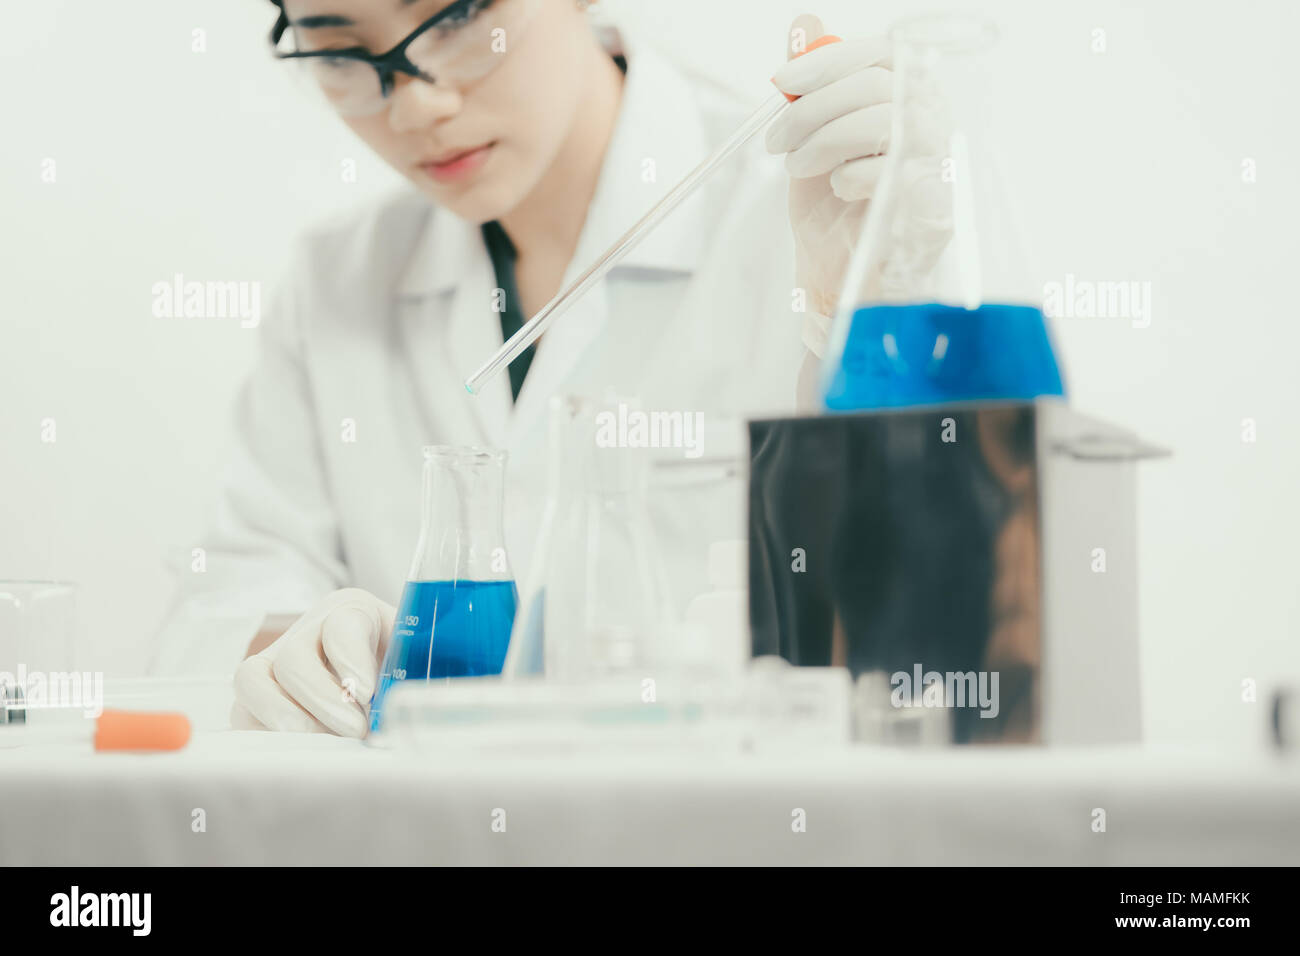 Young Asian scientist working in the lavatory with test tubes and other equipment to discover new drugs, products and methods of formulation - Stock Image